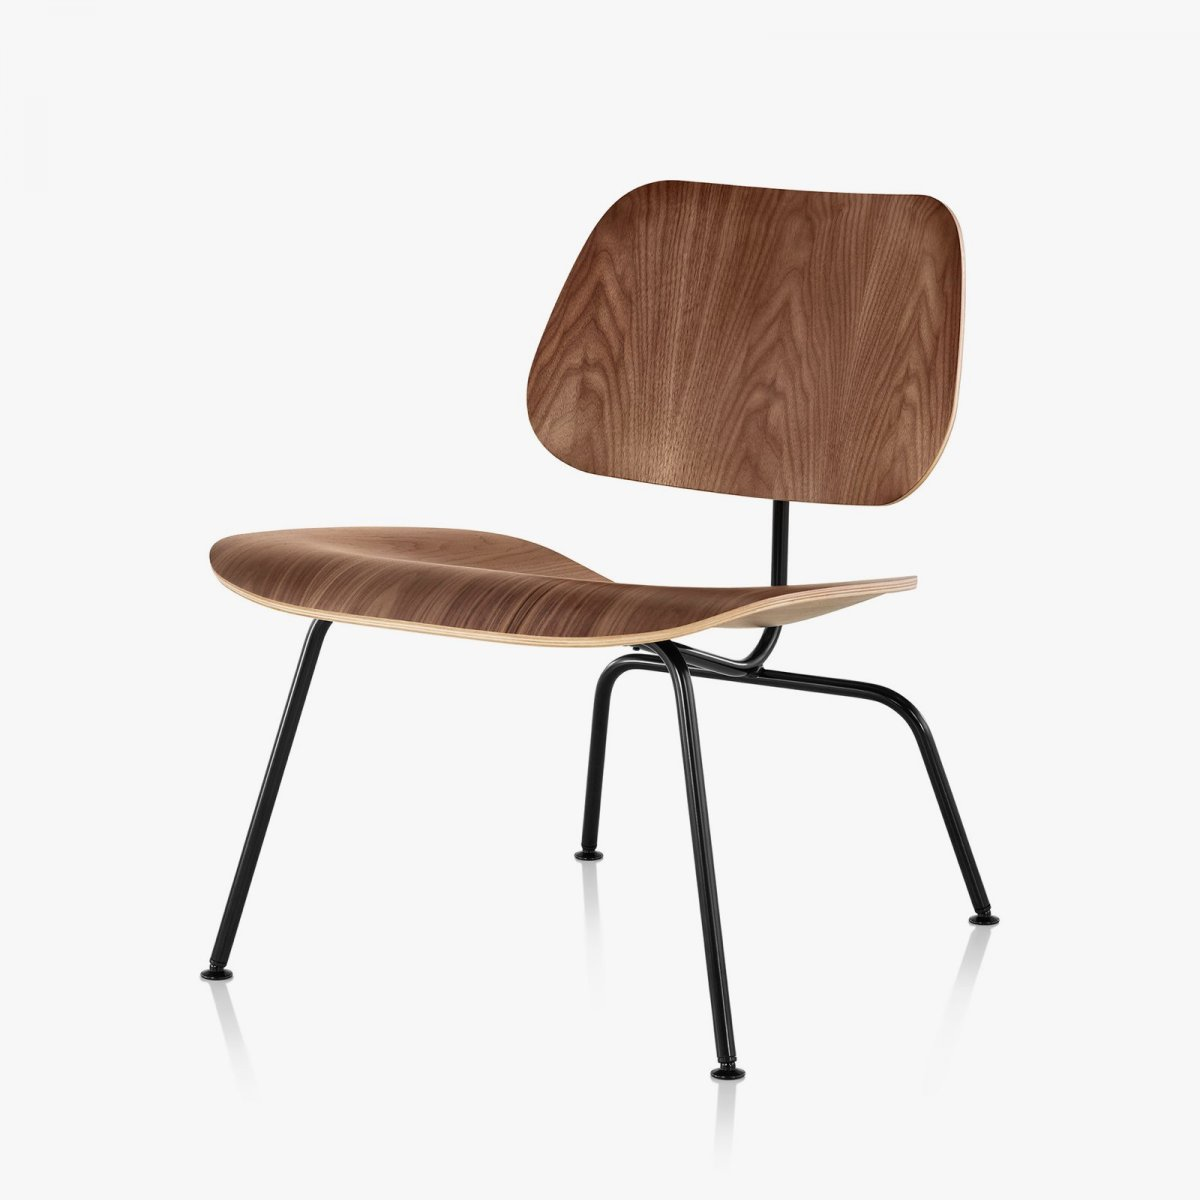 Eames Molded Plywood Lounge Chair Metal Base, walnut + black.